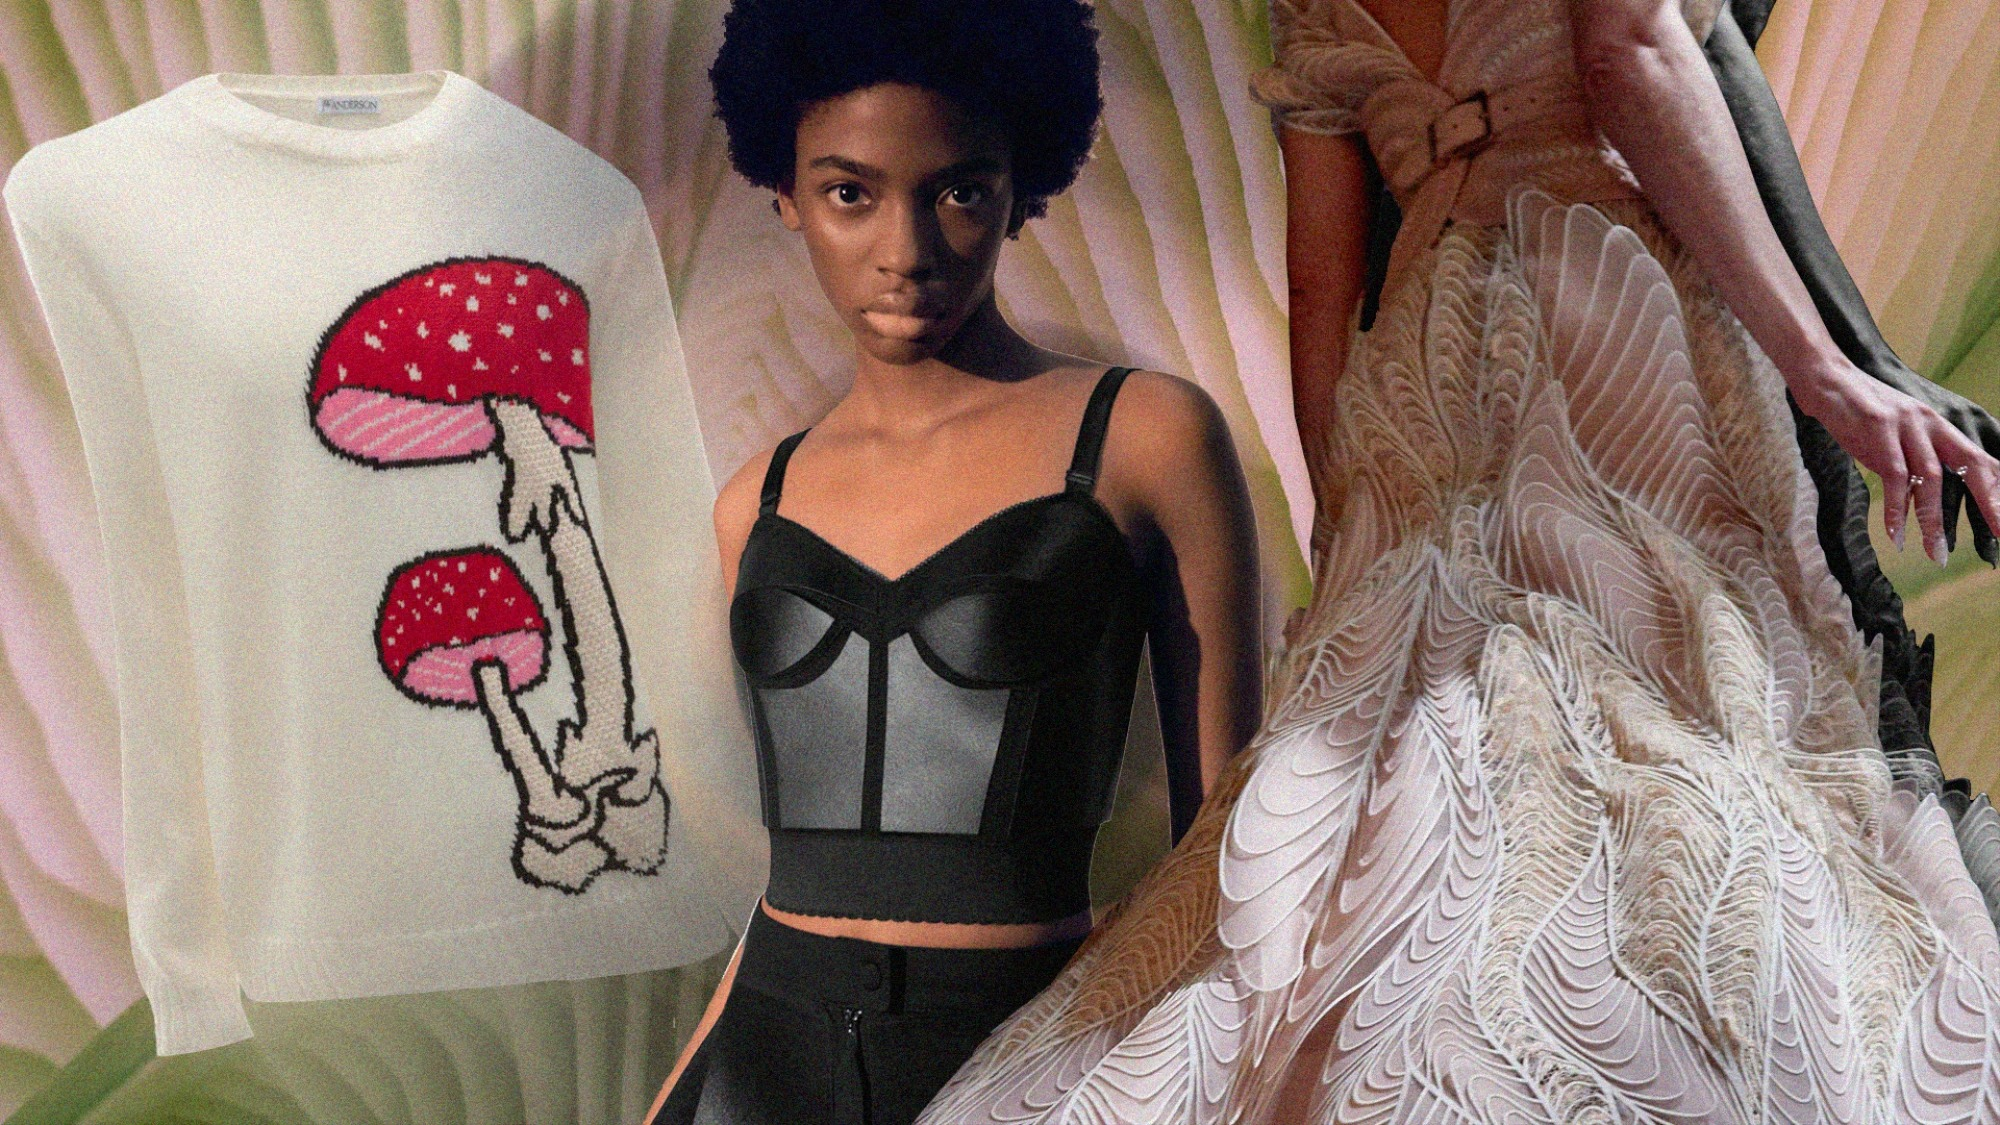 A collage featuring a JW Anderson mushroom jumper, a mushroom leather Stella McCartney bustier and an Iris van Herpen gown